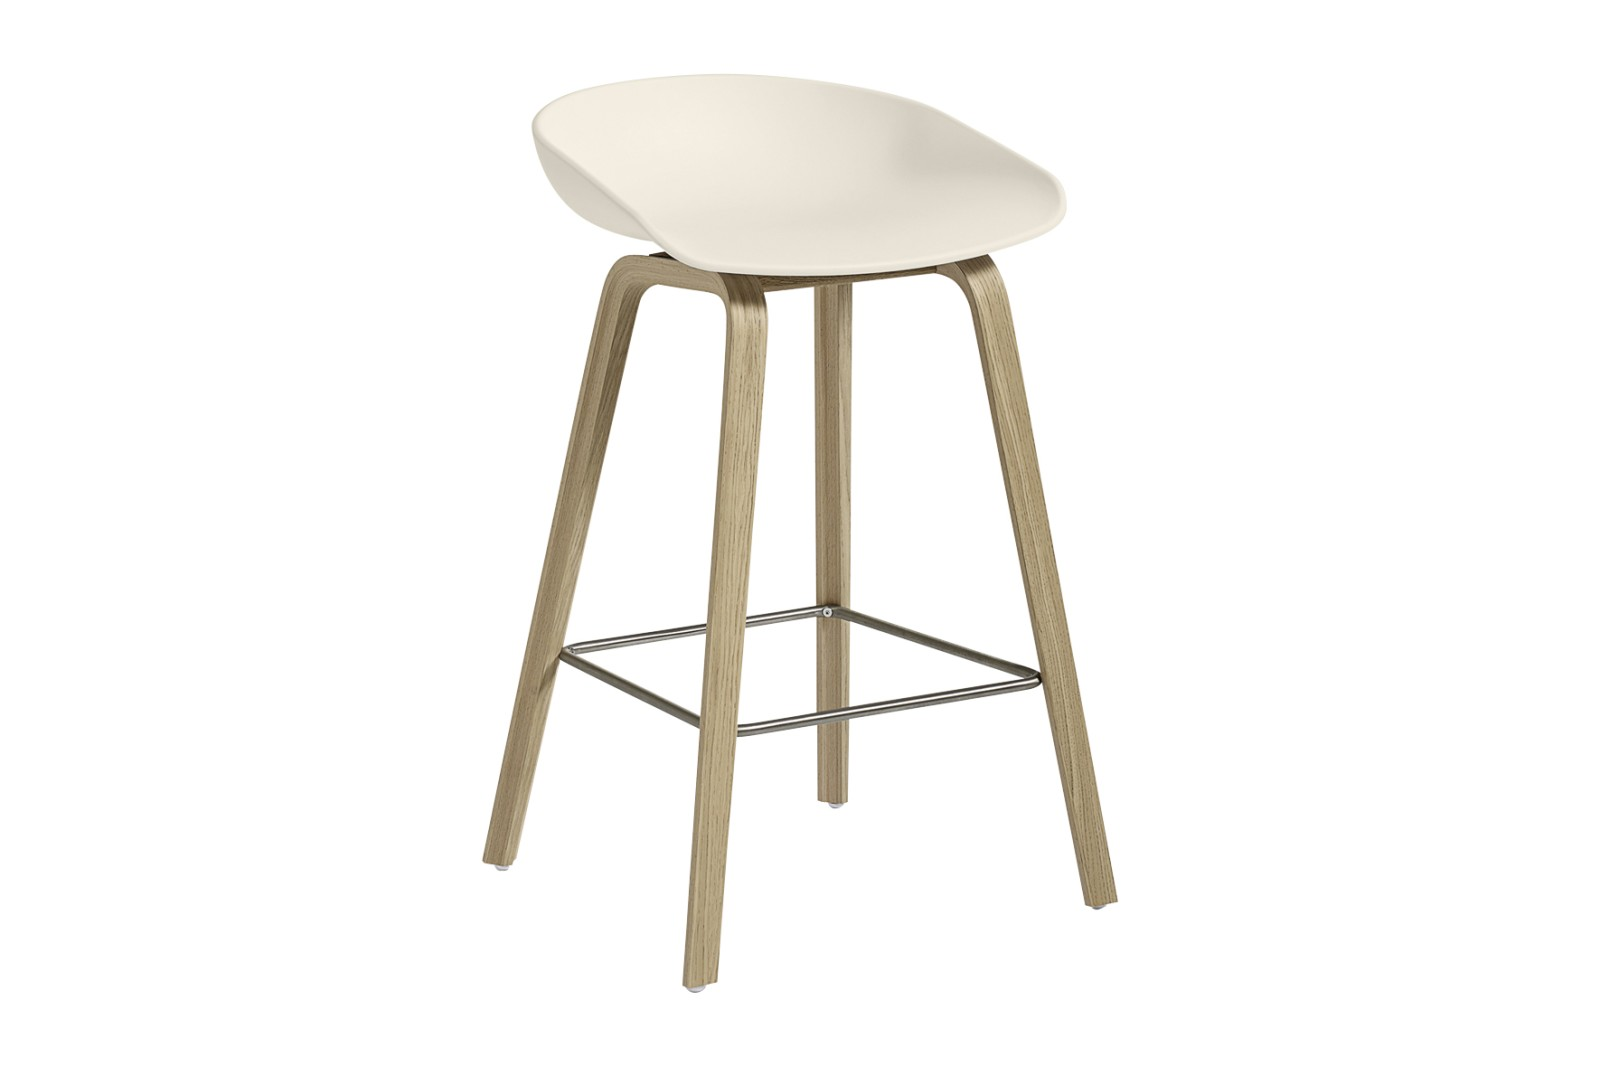 About A Stool AAS32 Matt Lacquered Oak Base, Cream White Seat, Low, Stainless Steel